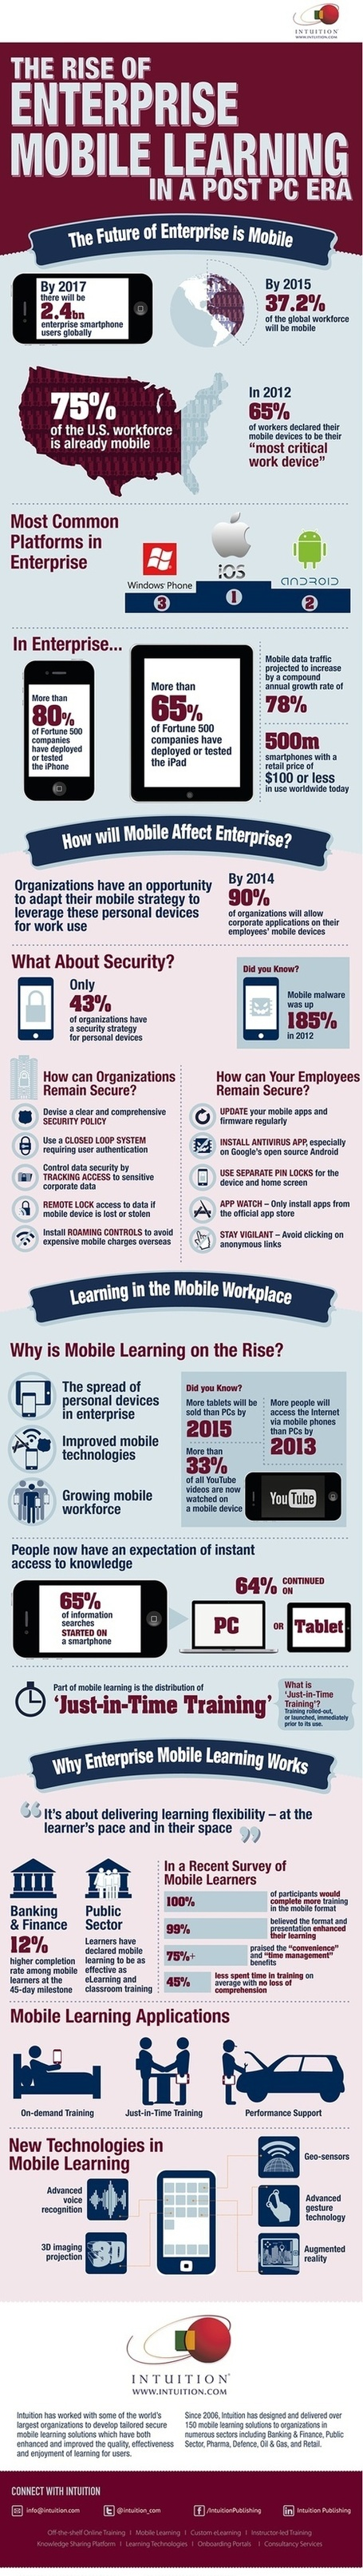 The Future of Enterprise Mobile Learning [INFOGRAPHIC] | Neli Maria Mengalli' Scoop.it! Space | Scoop.it